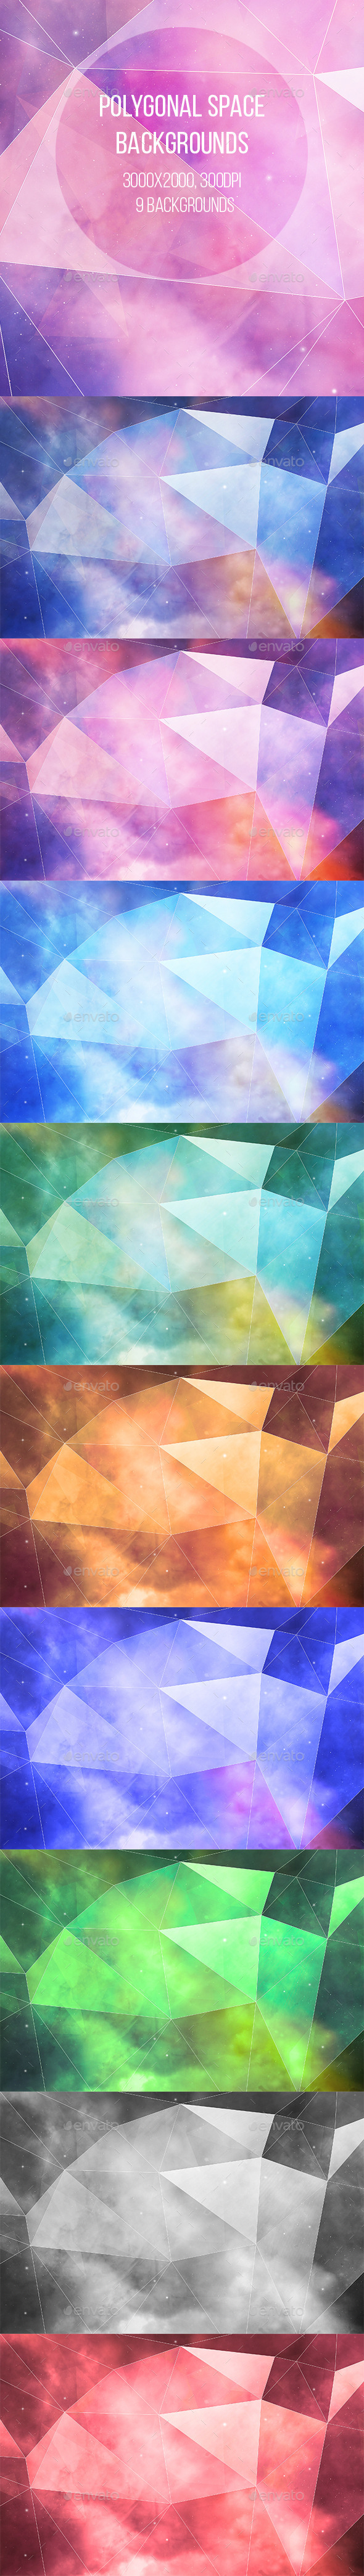 GraphicRiver Polygonal Space Backgrounds 10722406